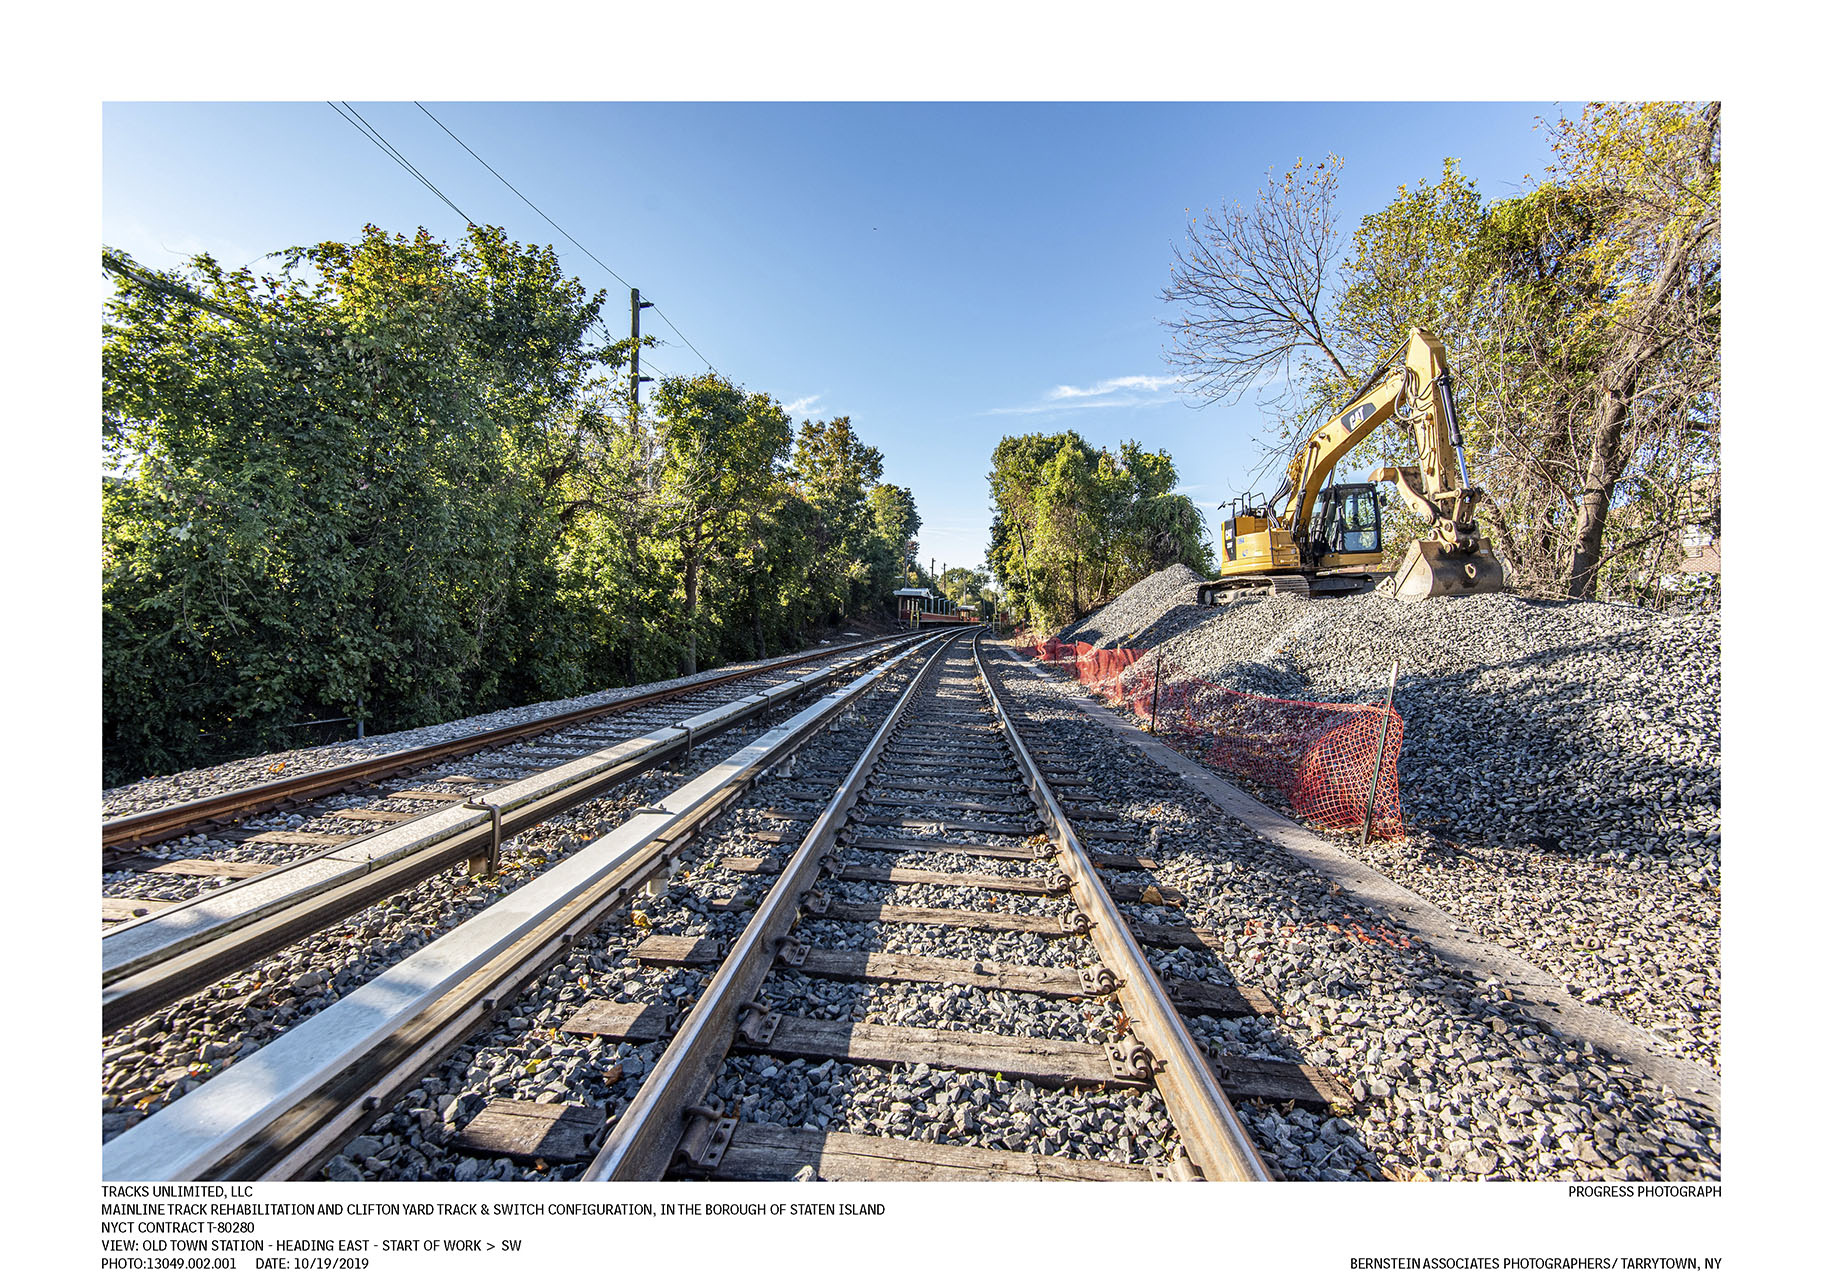 MAINLINE TRACK REHABILITATION AND CLIFTON YARD TRACK & SWITCH CONFIGURATION, IN THE